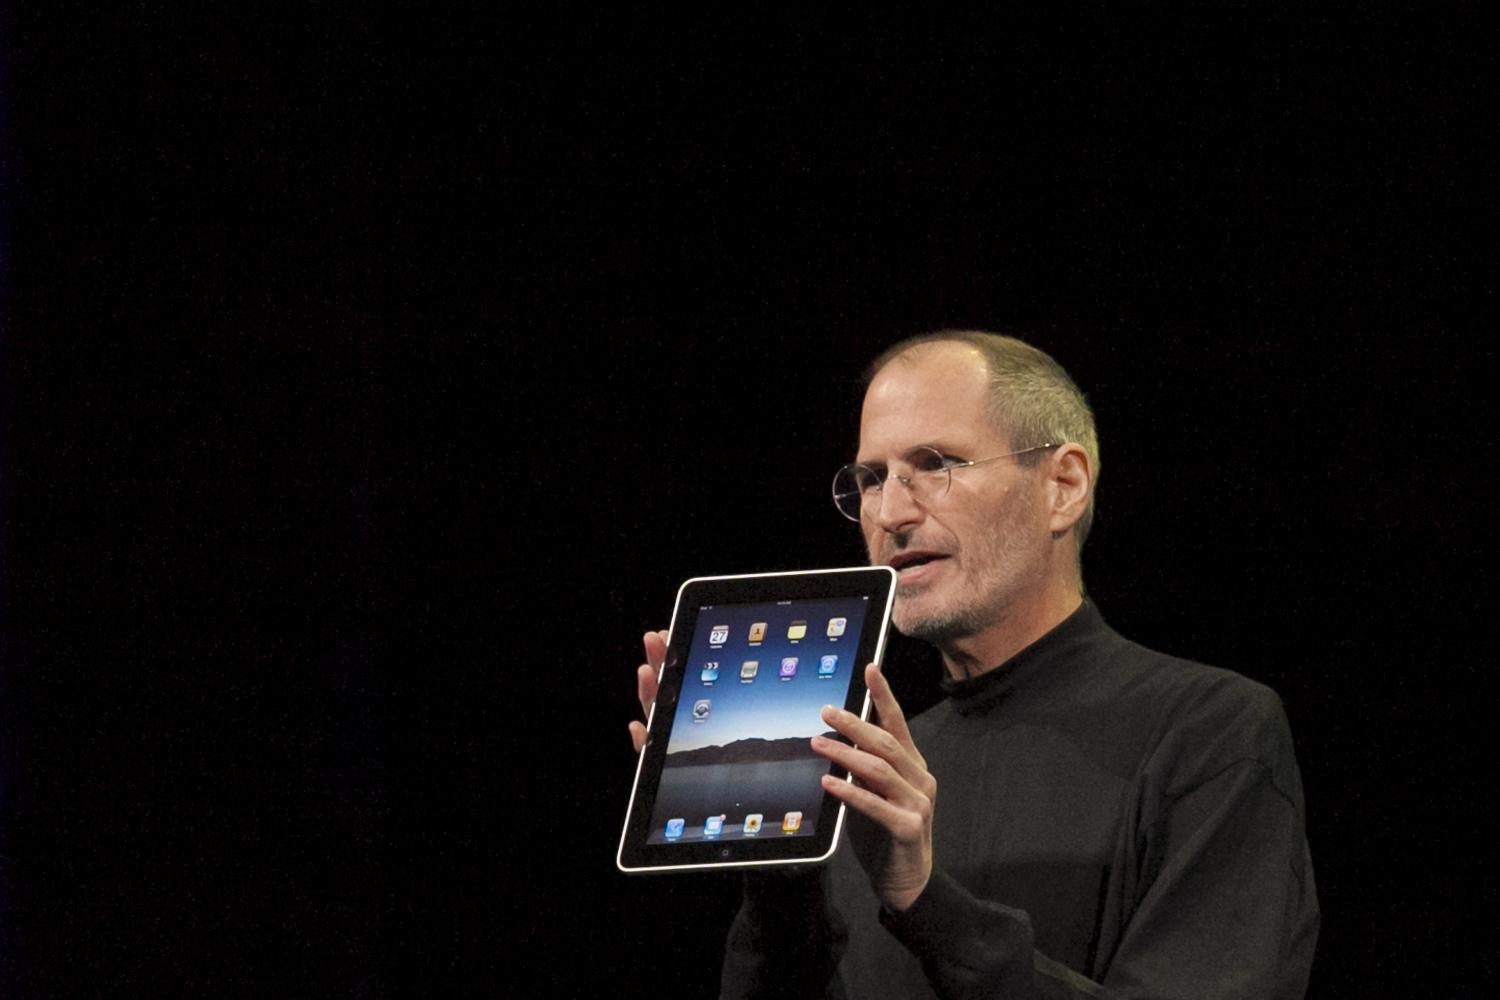 Steve Jobs shows off the first iPad in 2010.